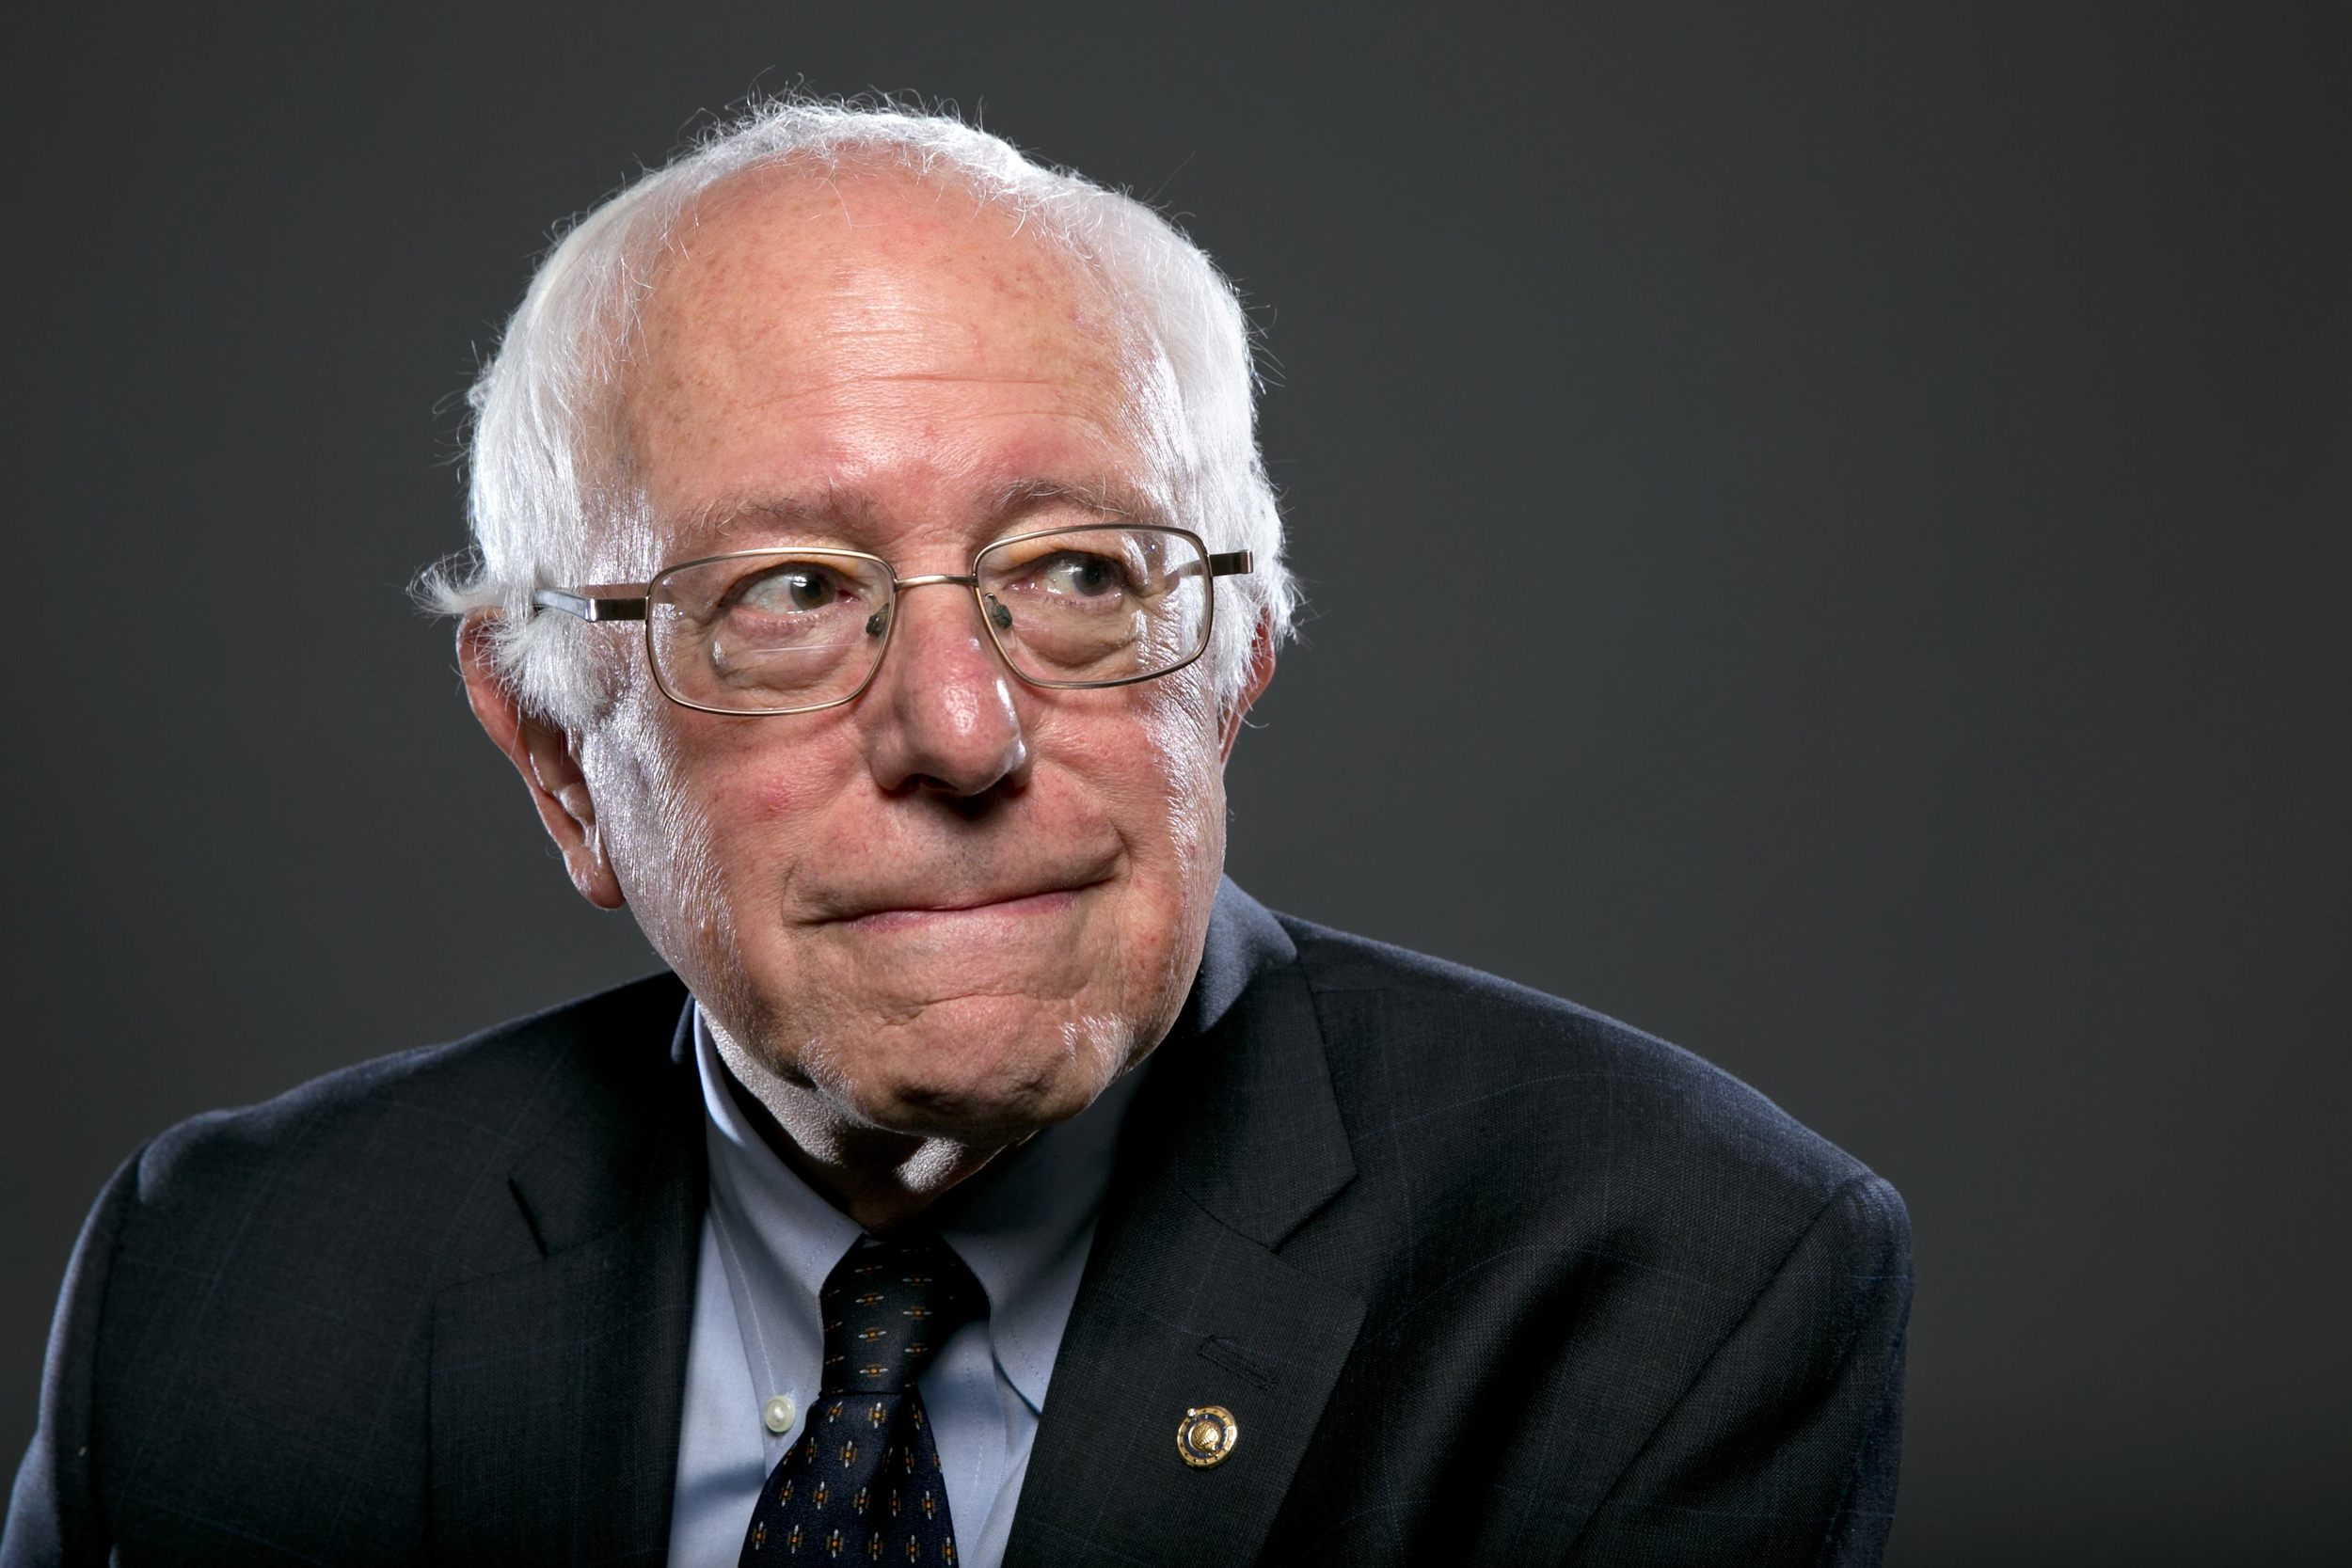 Sanders exudes a quiet calm and resoluteness in every task he works.